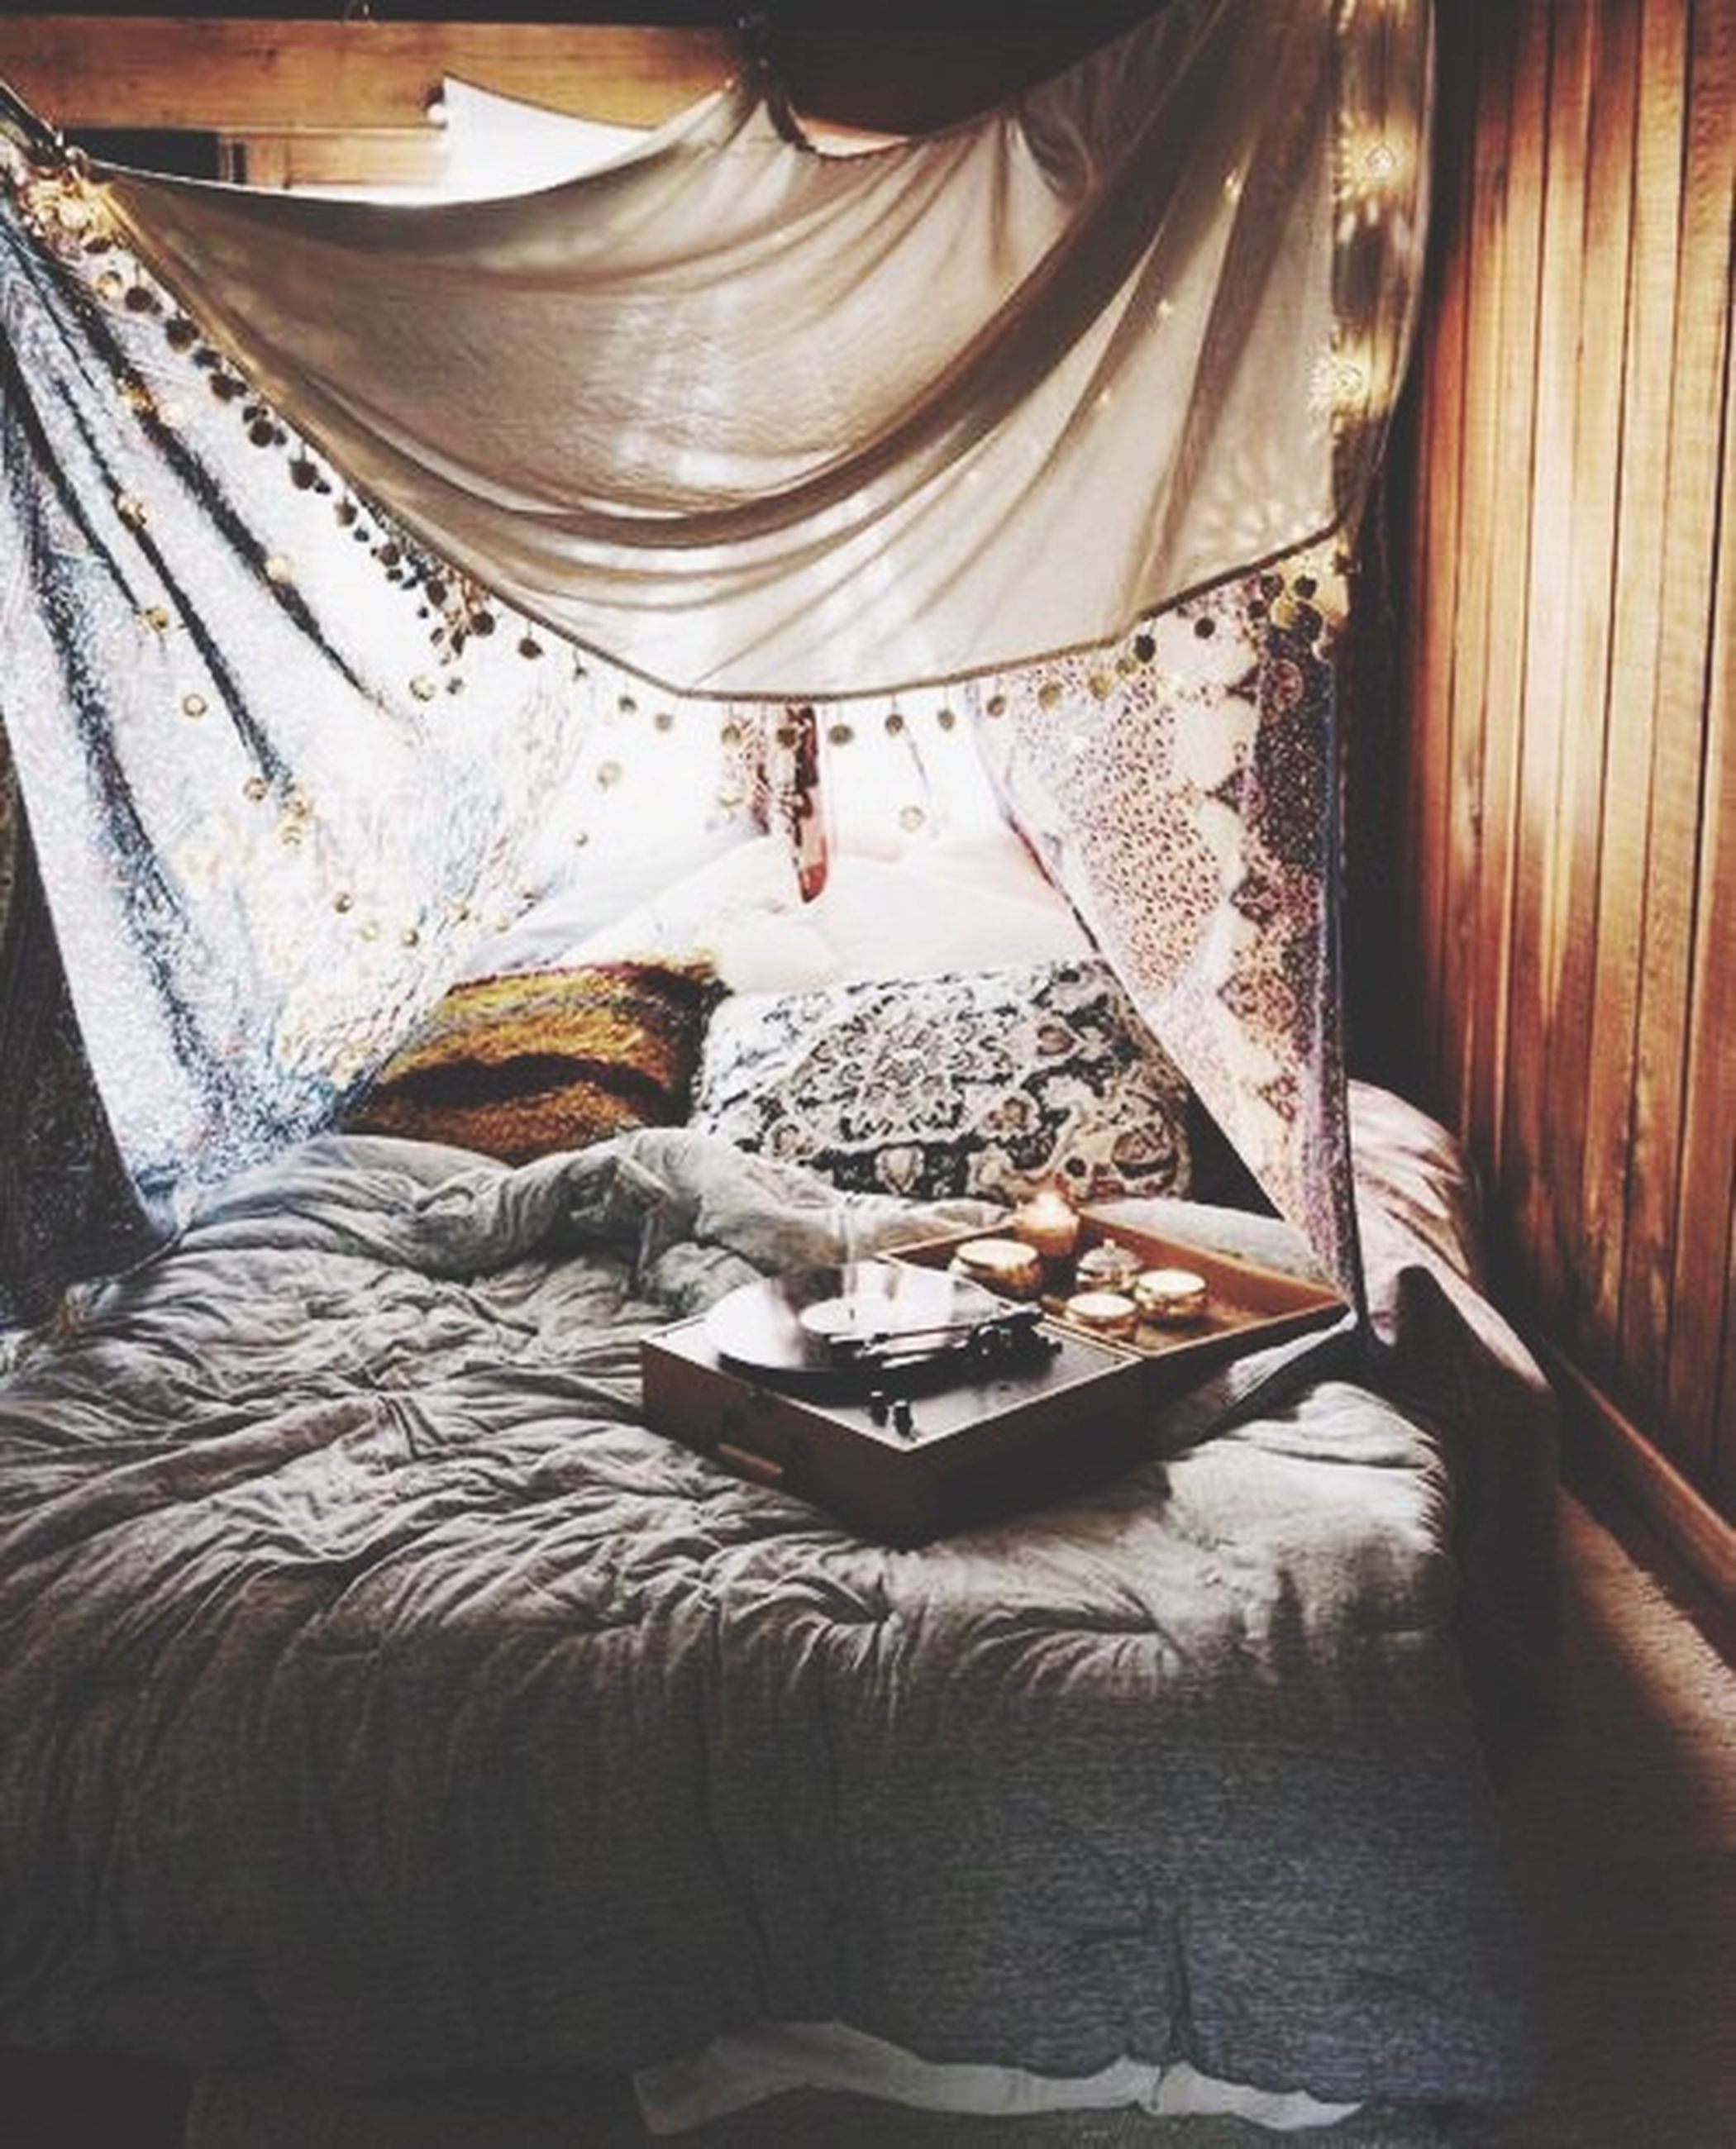 indoors, home interior, bed, messy, curtain, art and craft, art, creativity, abandoned, interior, no people, pillow, bedroom, house, textile, window, absence, old, wall - building feature, fabric